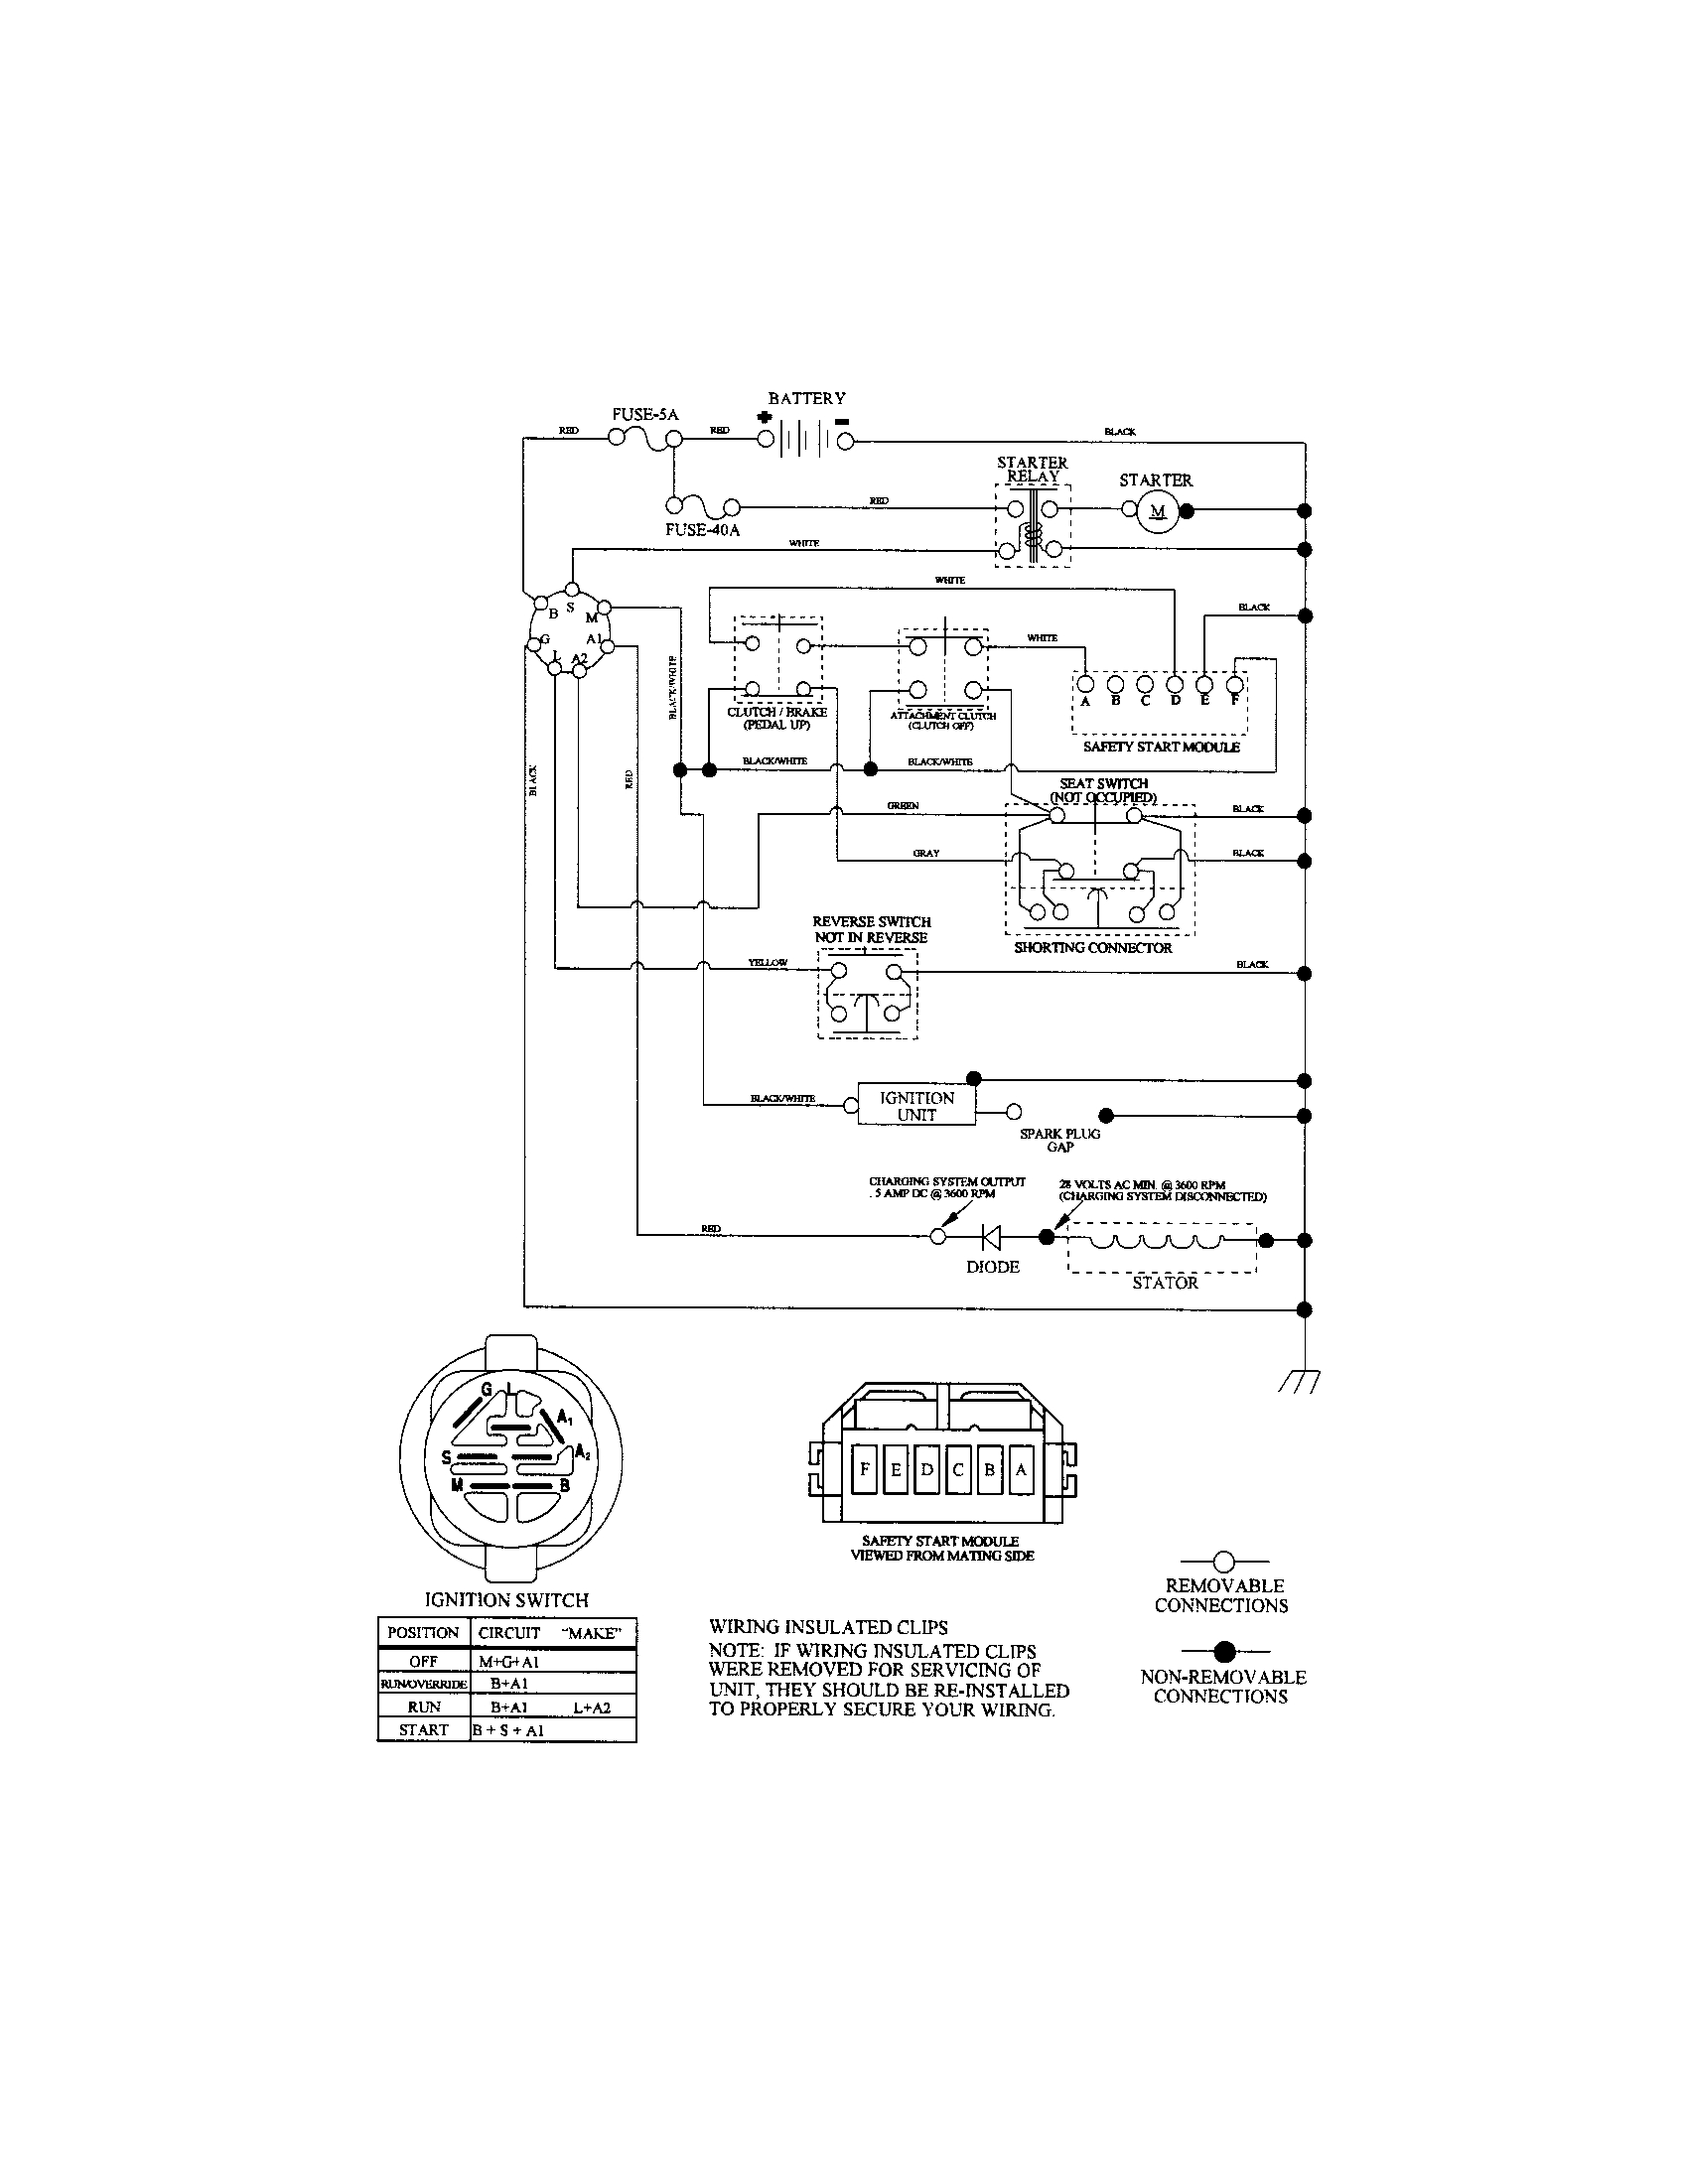 Wiring Diagram Craftsman Model 917 275671 | Online Wiring Diagram on